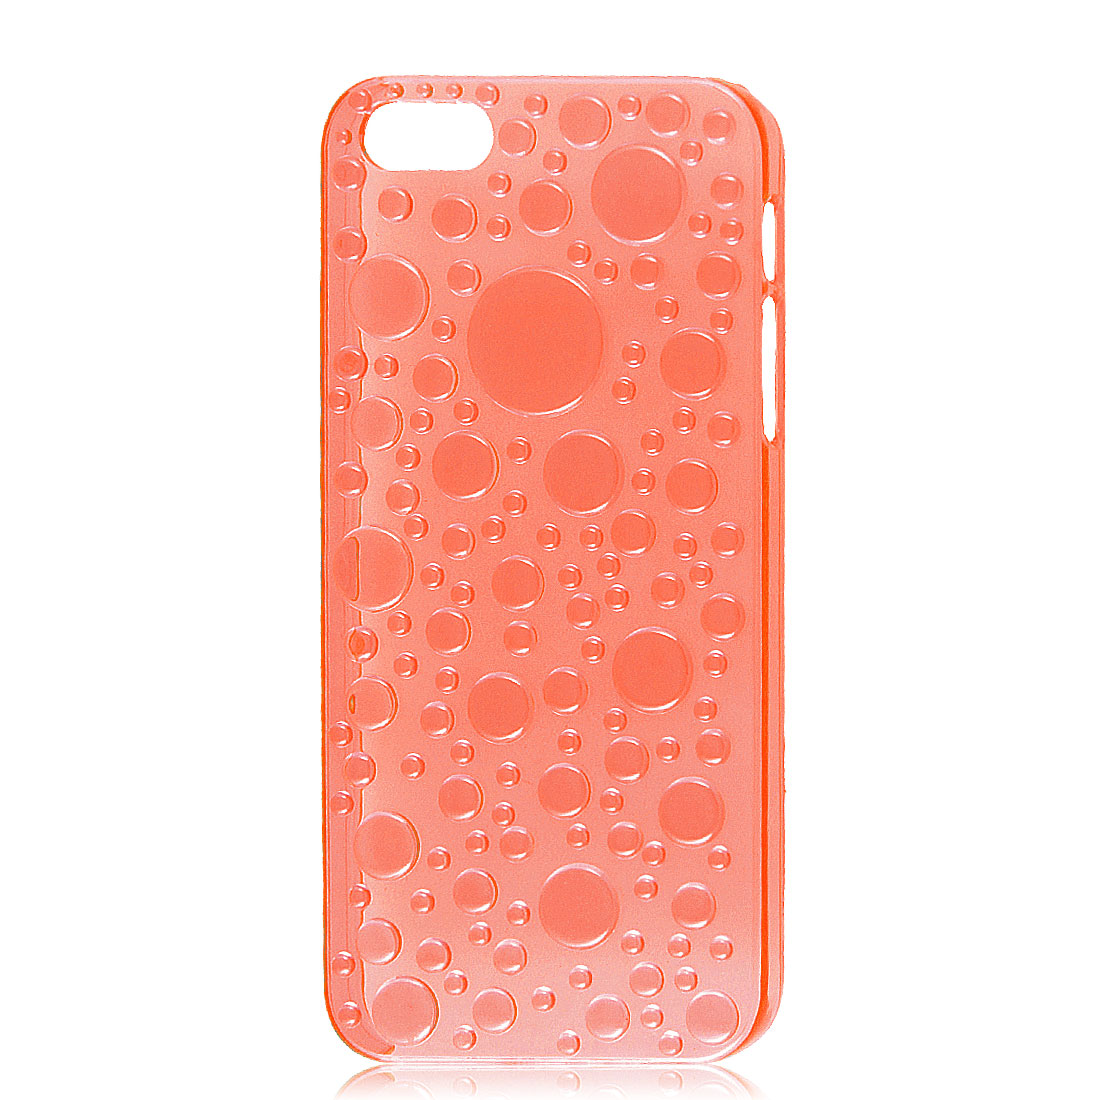 3D Raindrop Waterdrop Hard Back Case Cover Clear Orangered for Apple iPhone 5 5G